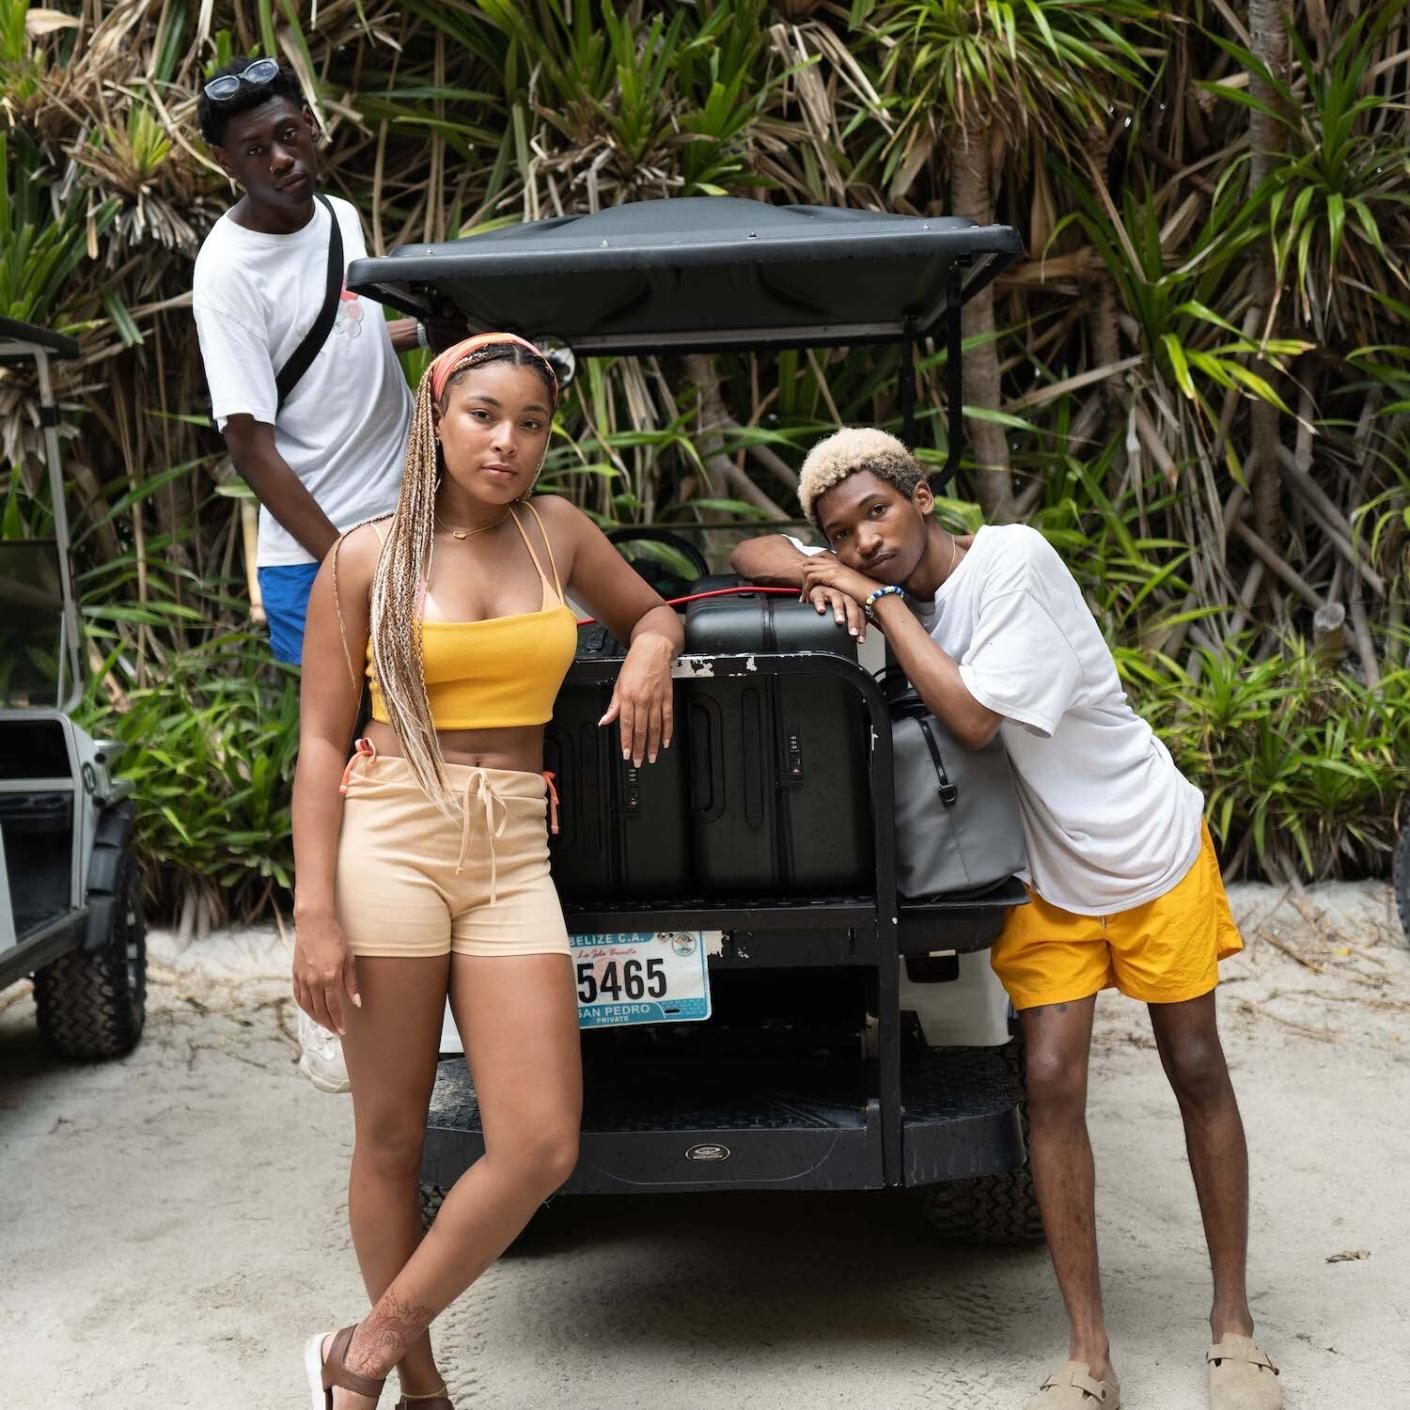 Two travelers in Belize standing beside two Away suitcases on a golf cart